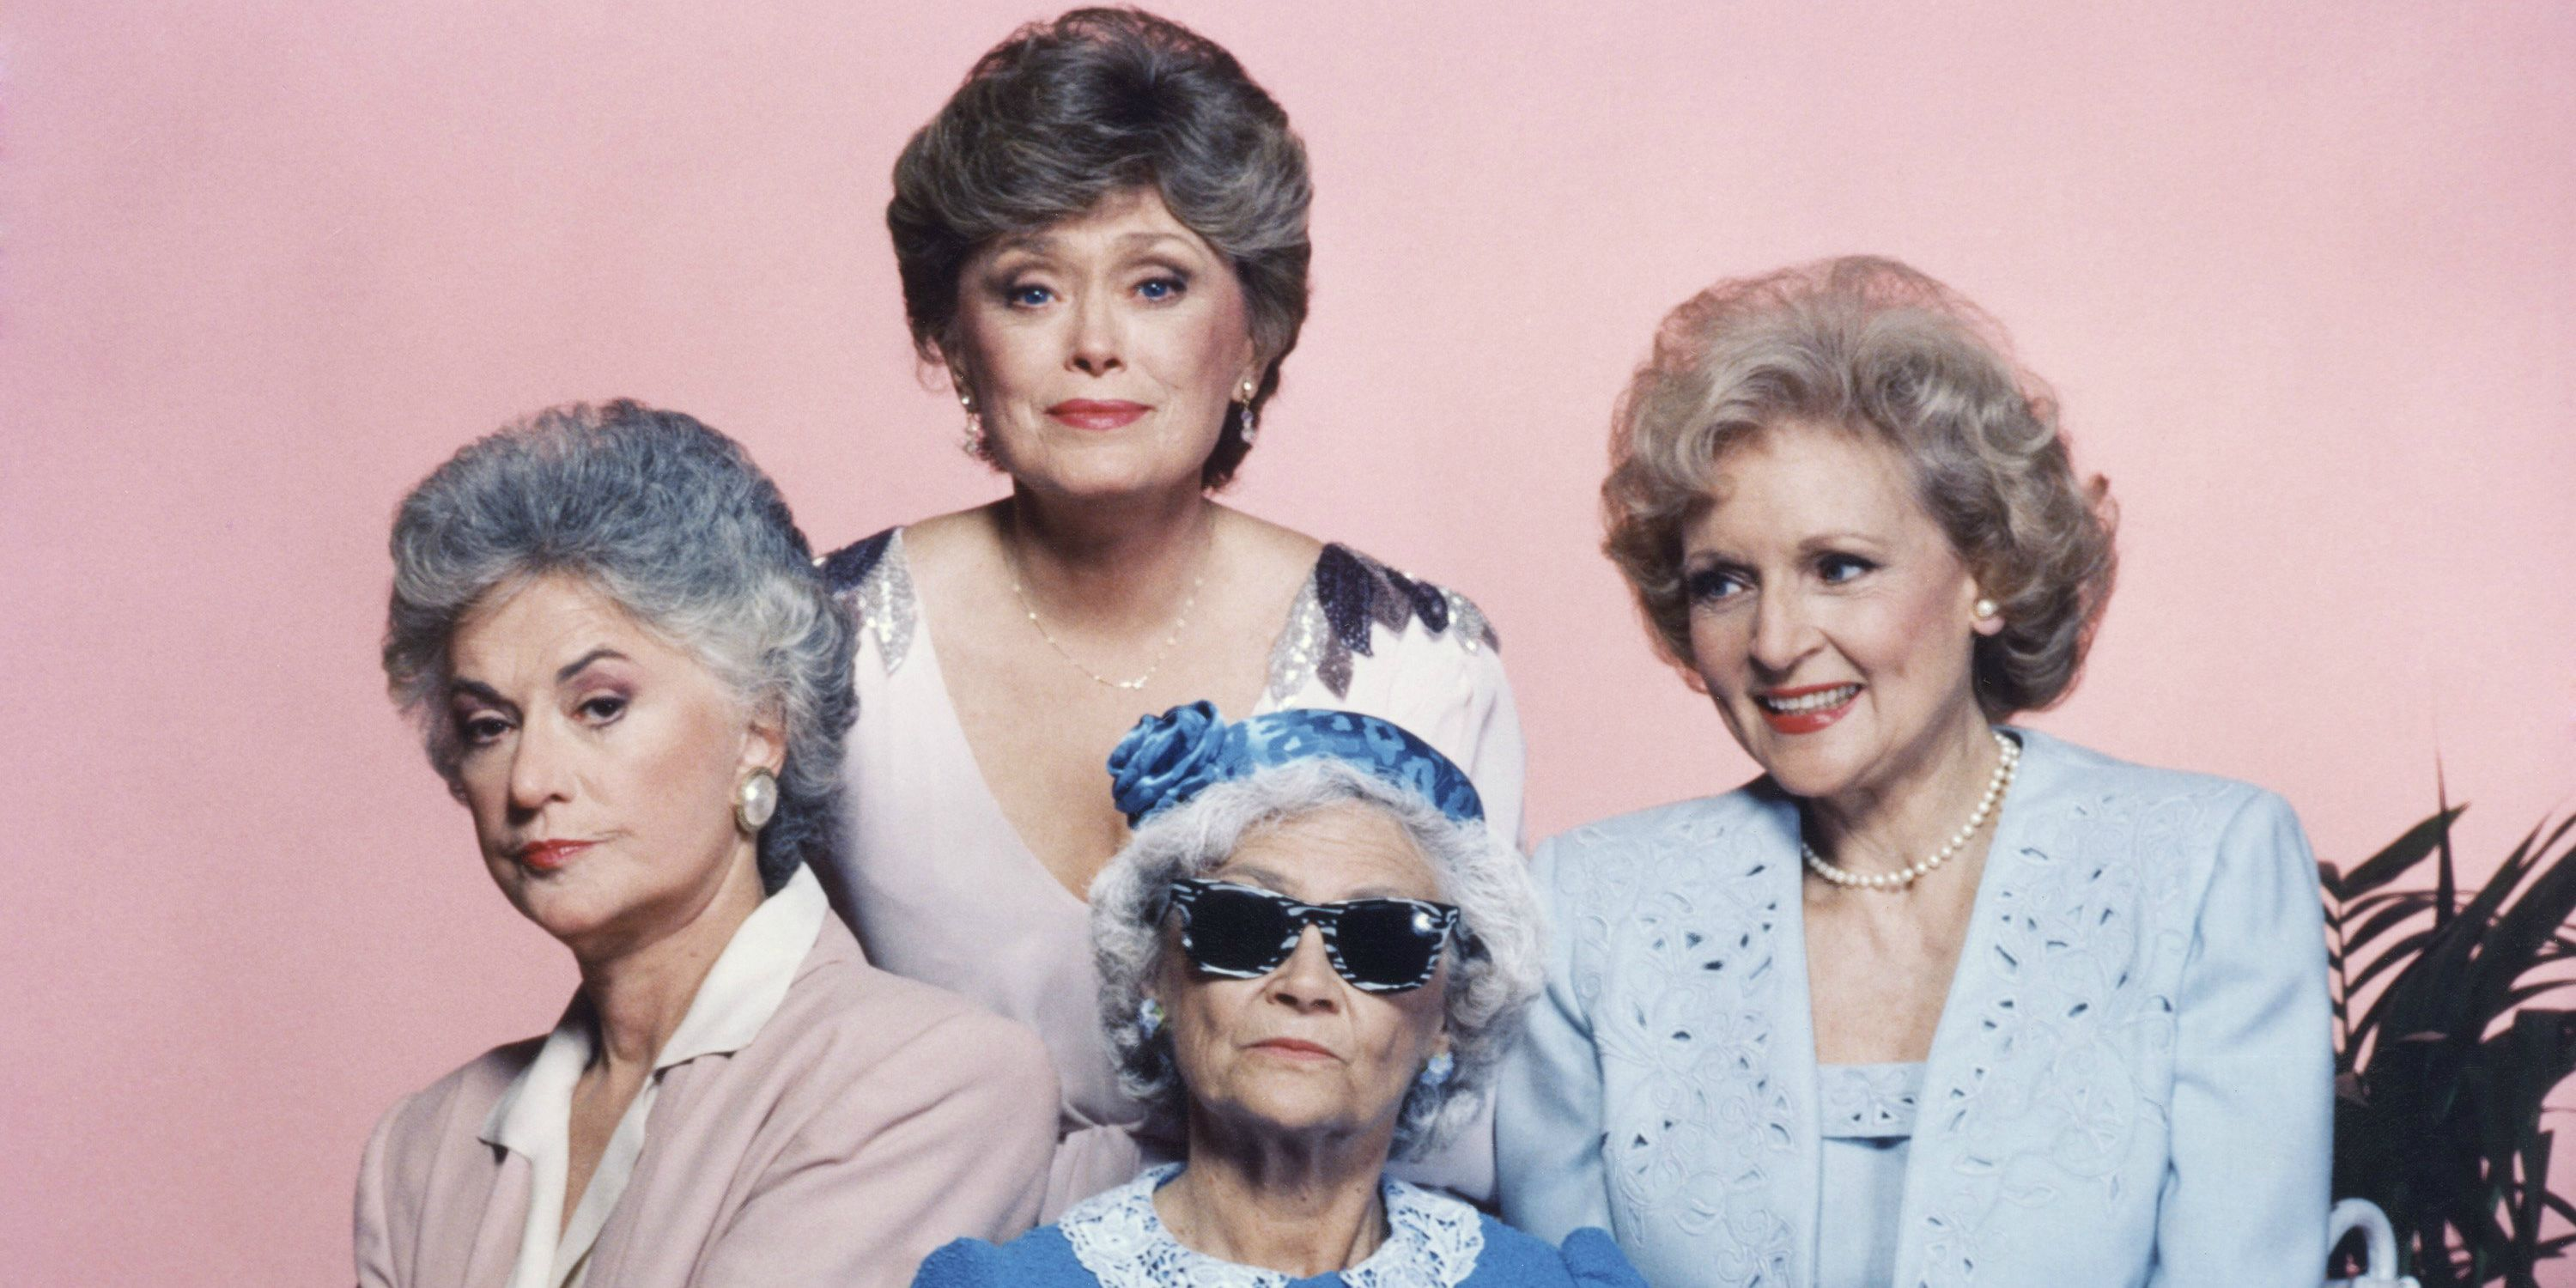 Inside The ScreenHow Golden Girls Is Still A Hit TV Show In 2018 3